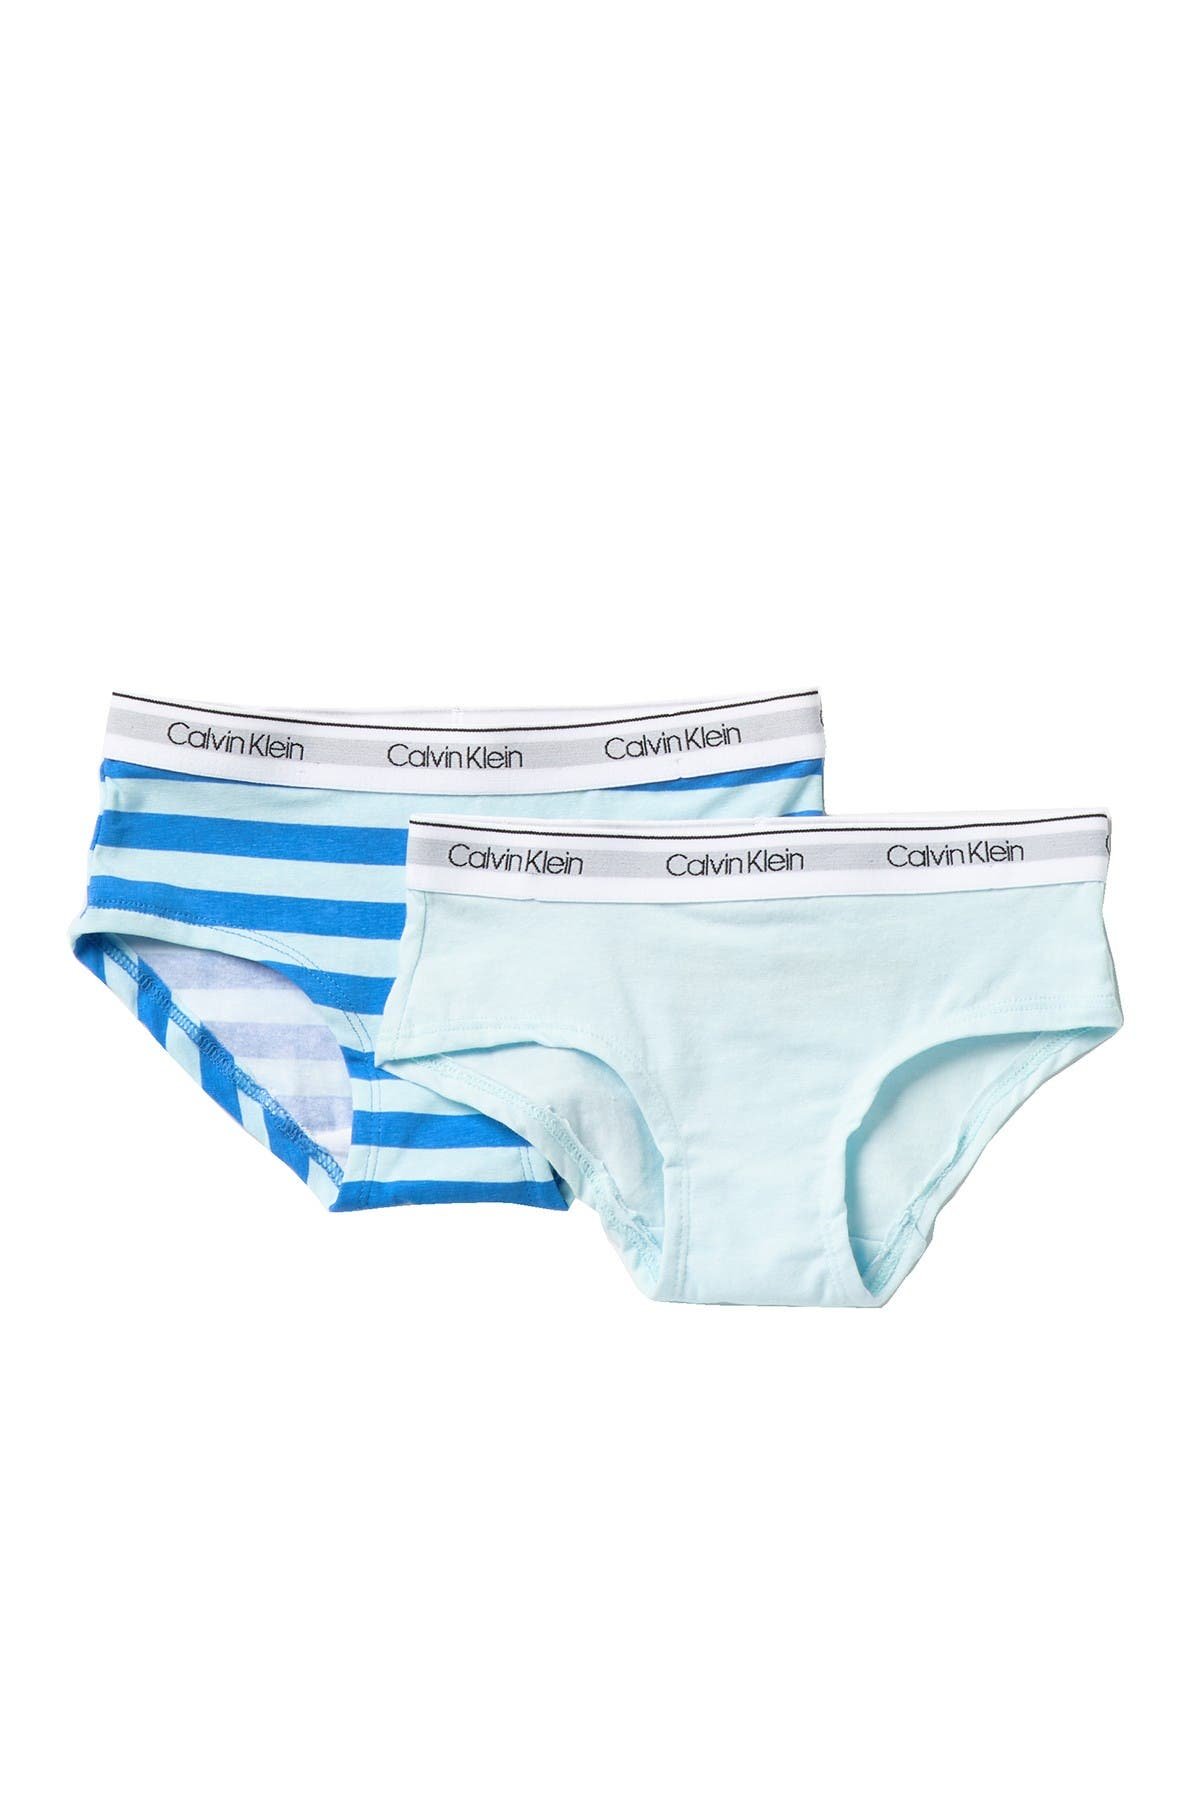 Image of Calvin Klein Hipsters - Pack of 2